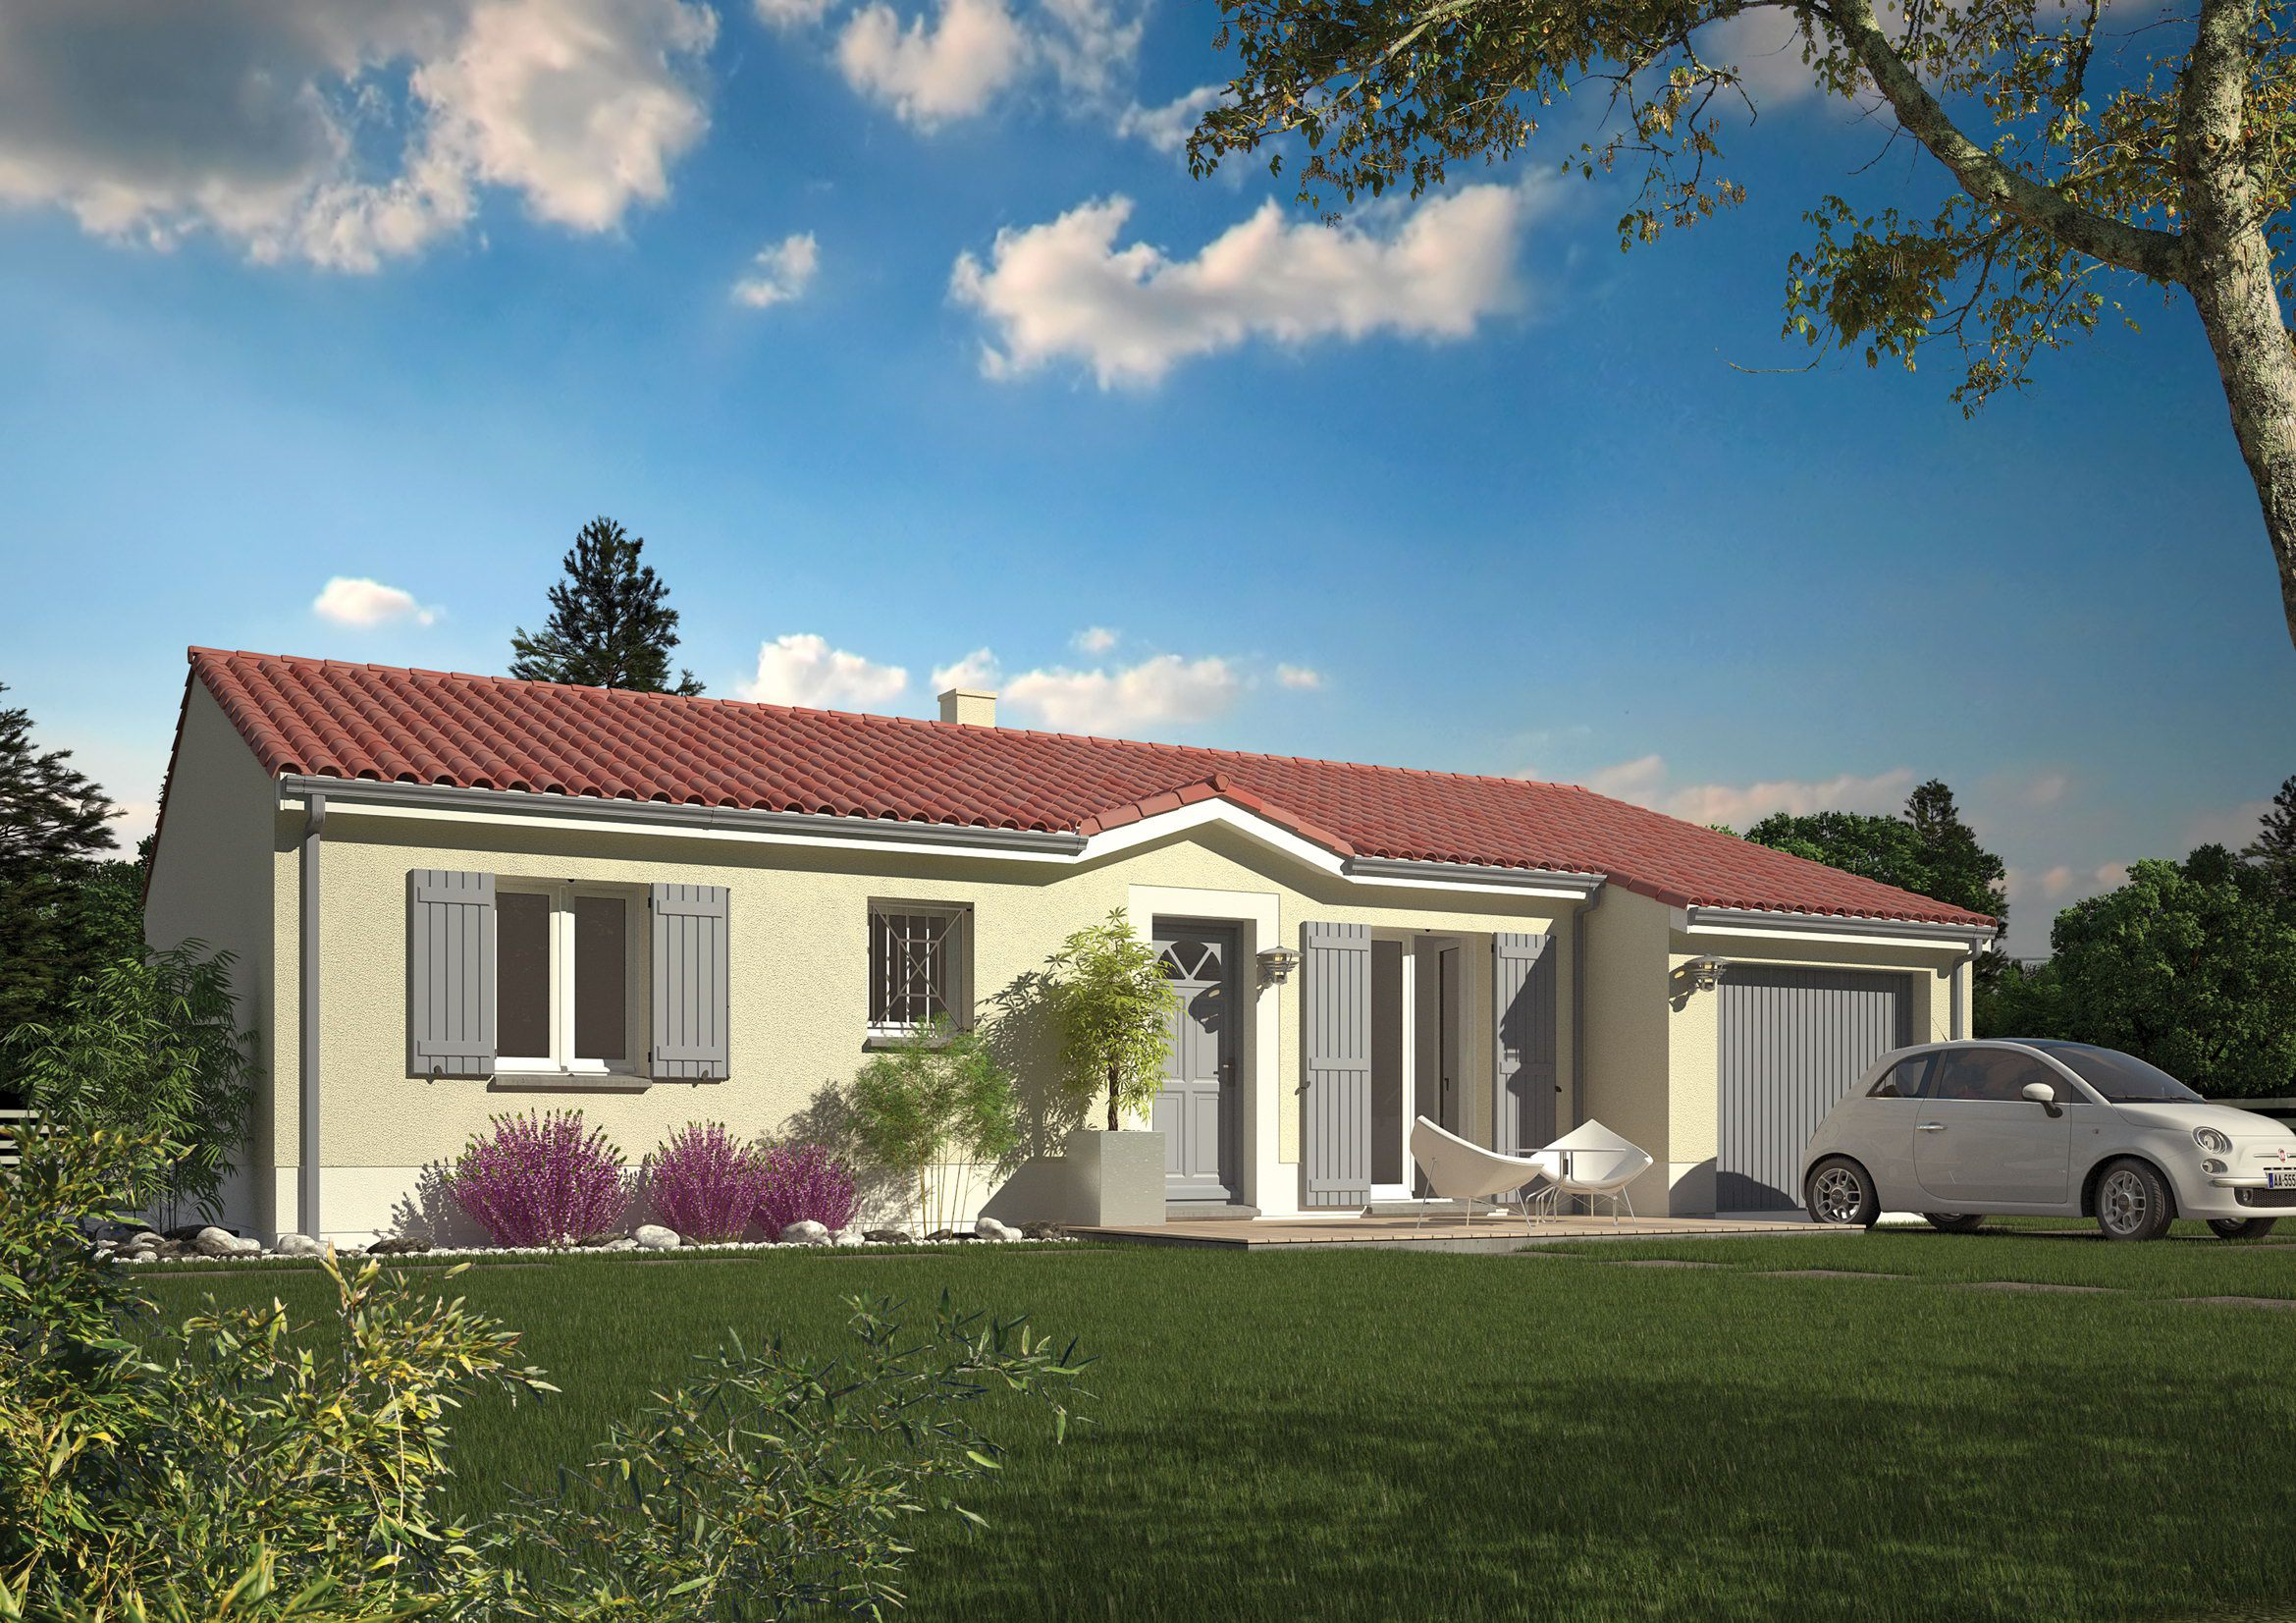 Plan de maison chantal b for Maisons chantal b